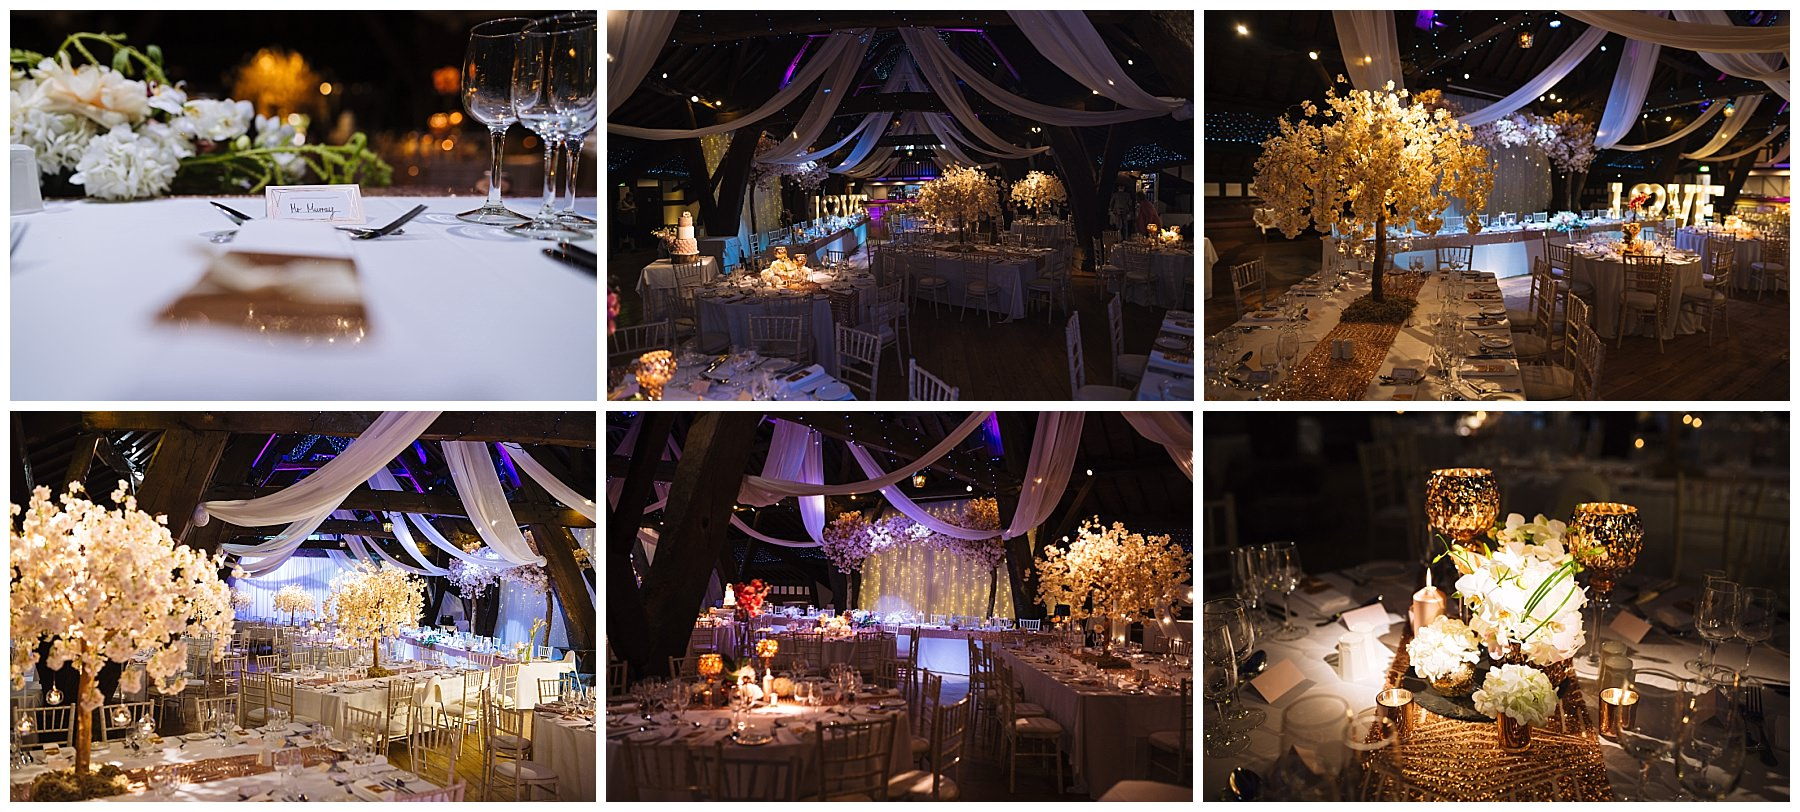 Stunning rivington barn deccorated for a wedding by scene my event